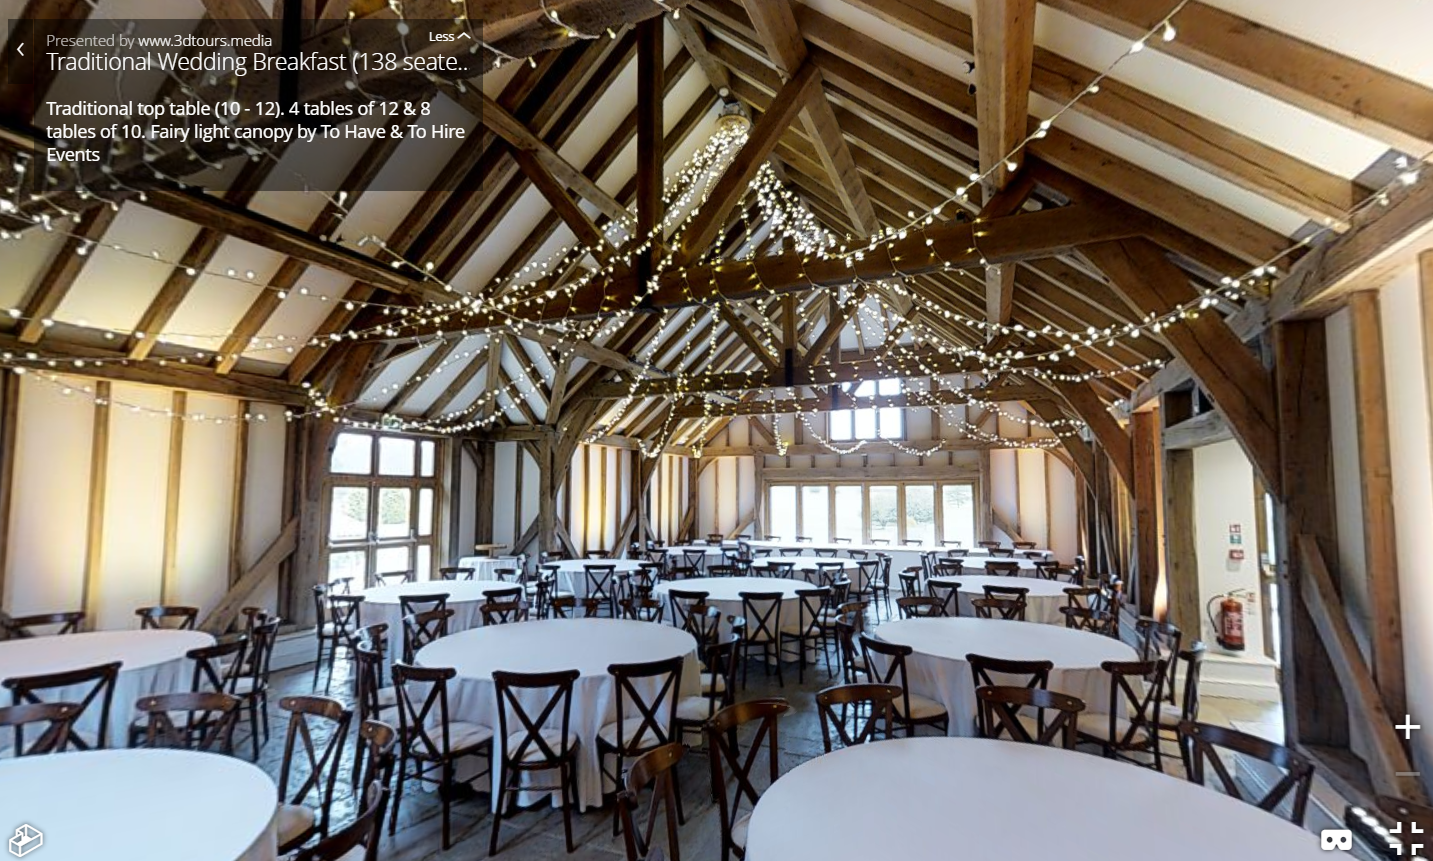 Our beautiful Fairy Light Canopy and bespoke chandelier really make an impact in the high ceiling